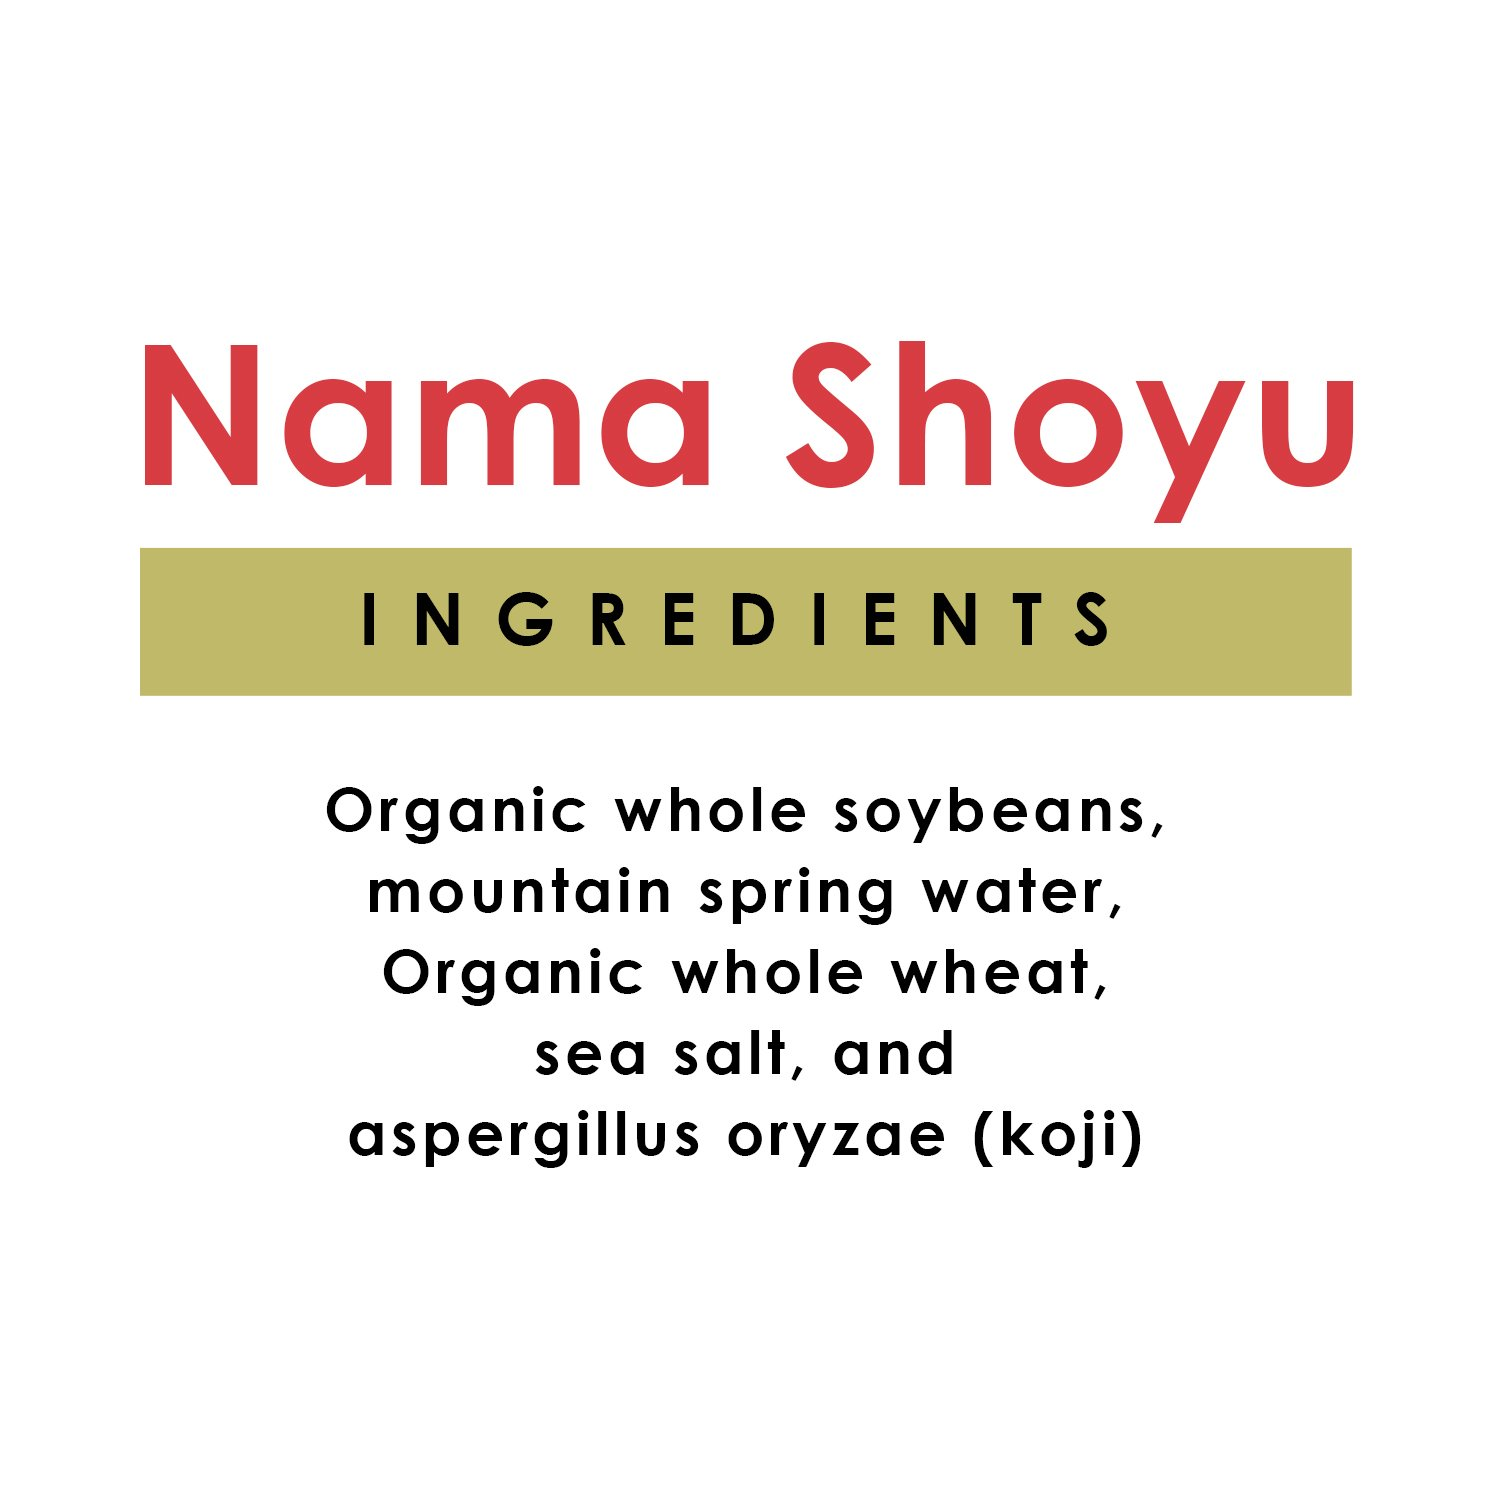 Ohsawa Nama Shoyu, Organic and Aged in 150 Year Cedar Kegs for Extra Flavor - Japanese Soy-Free Sauce, Low - Sodium, Non-GMO, Vegan, Kosher - 32 oz by OHSAWA® (Image #3)